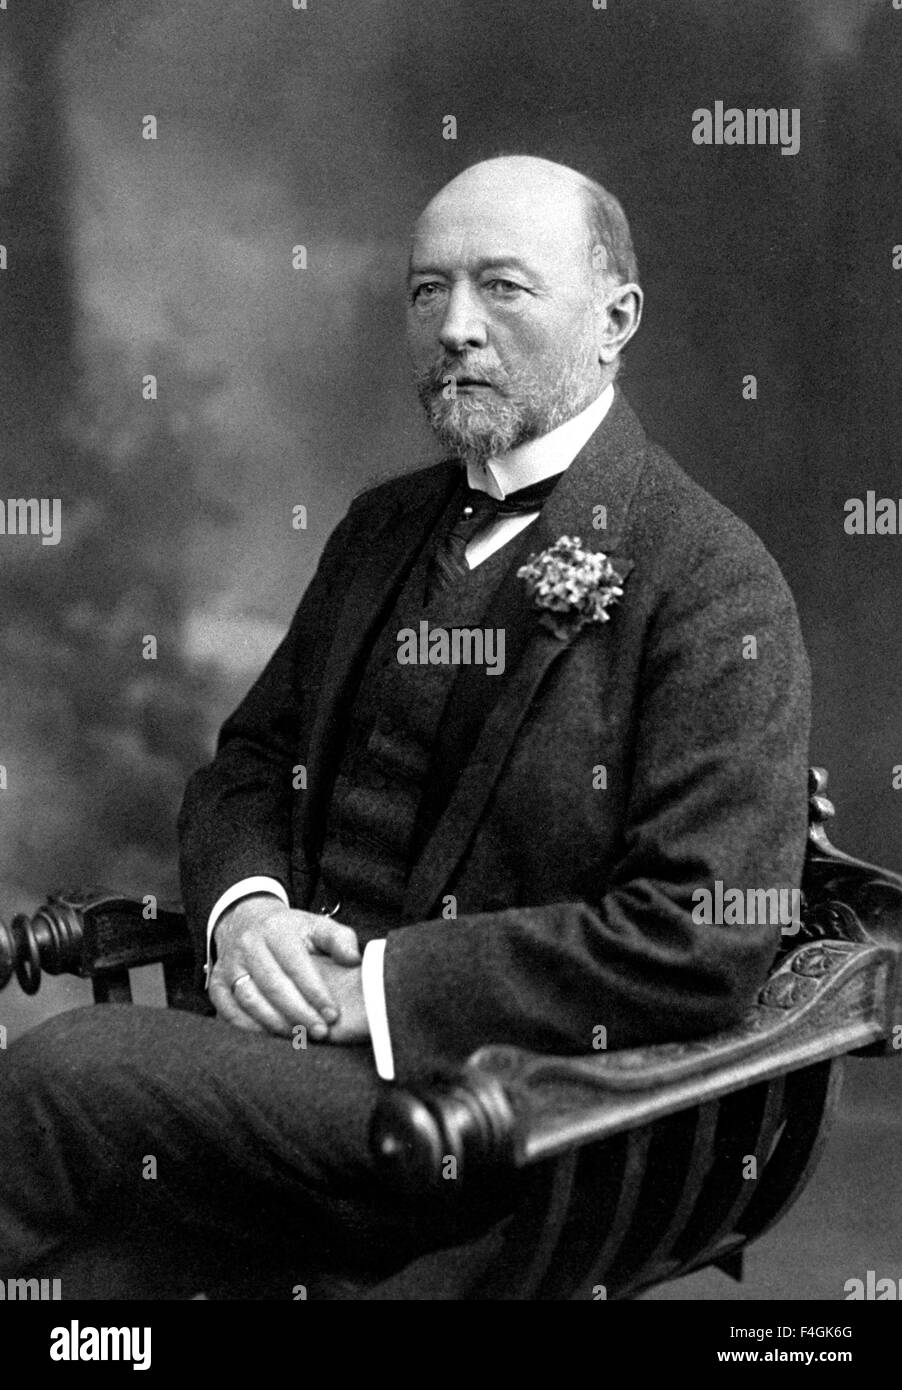 EMIL von BEHRING (1854-1917) German physiologist - Stock Image